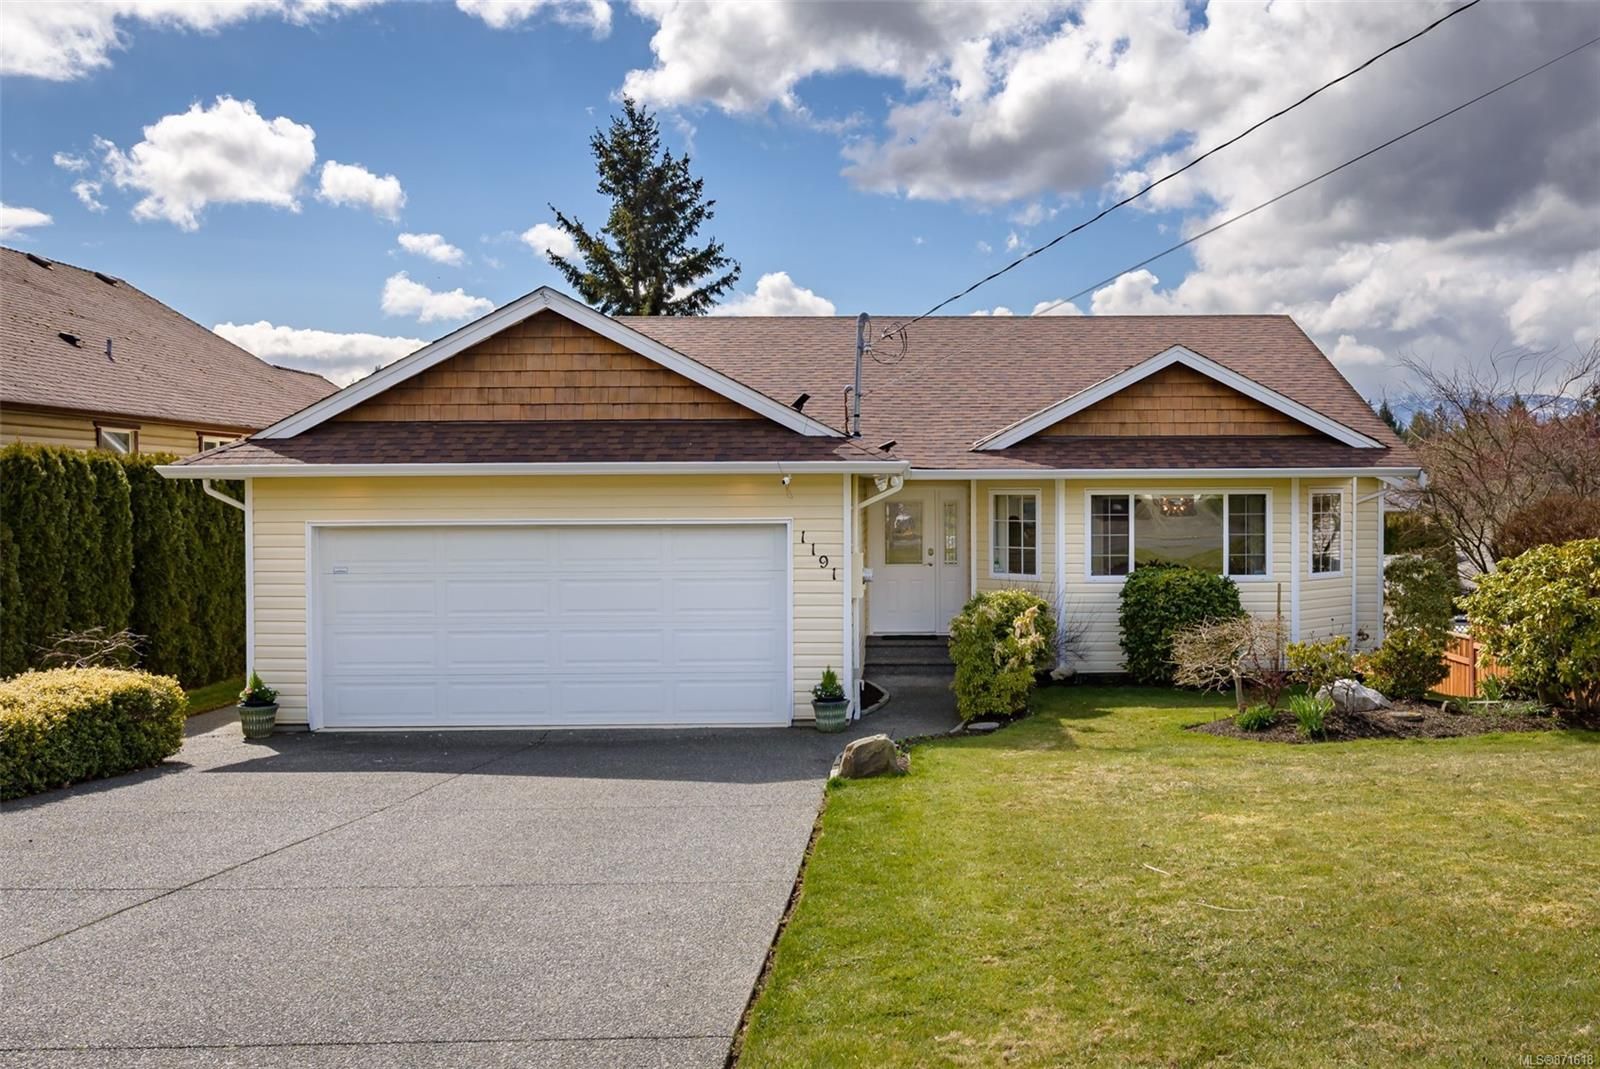 Main Photo: 1191 Thorpe Ave in : CV Courtenay East House for sale (Comox Valley)  : MLS®# 871618